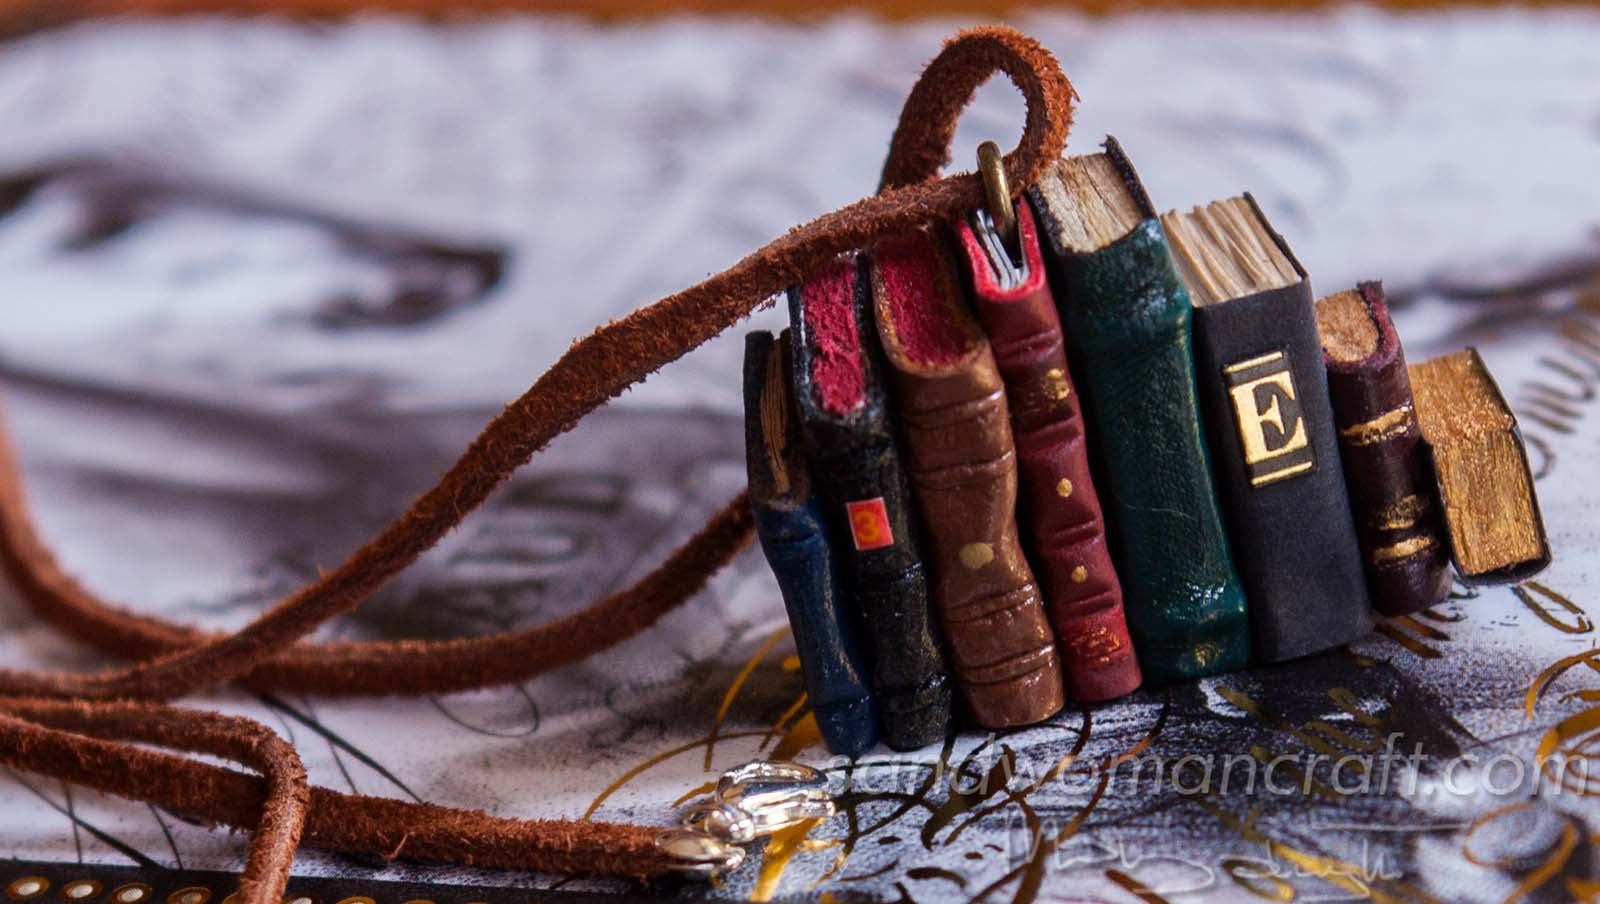 Miniature leather book necklace with charm made out of eight books